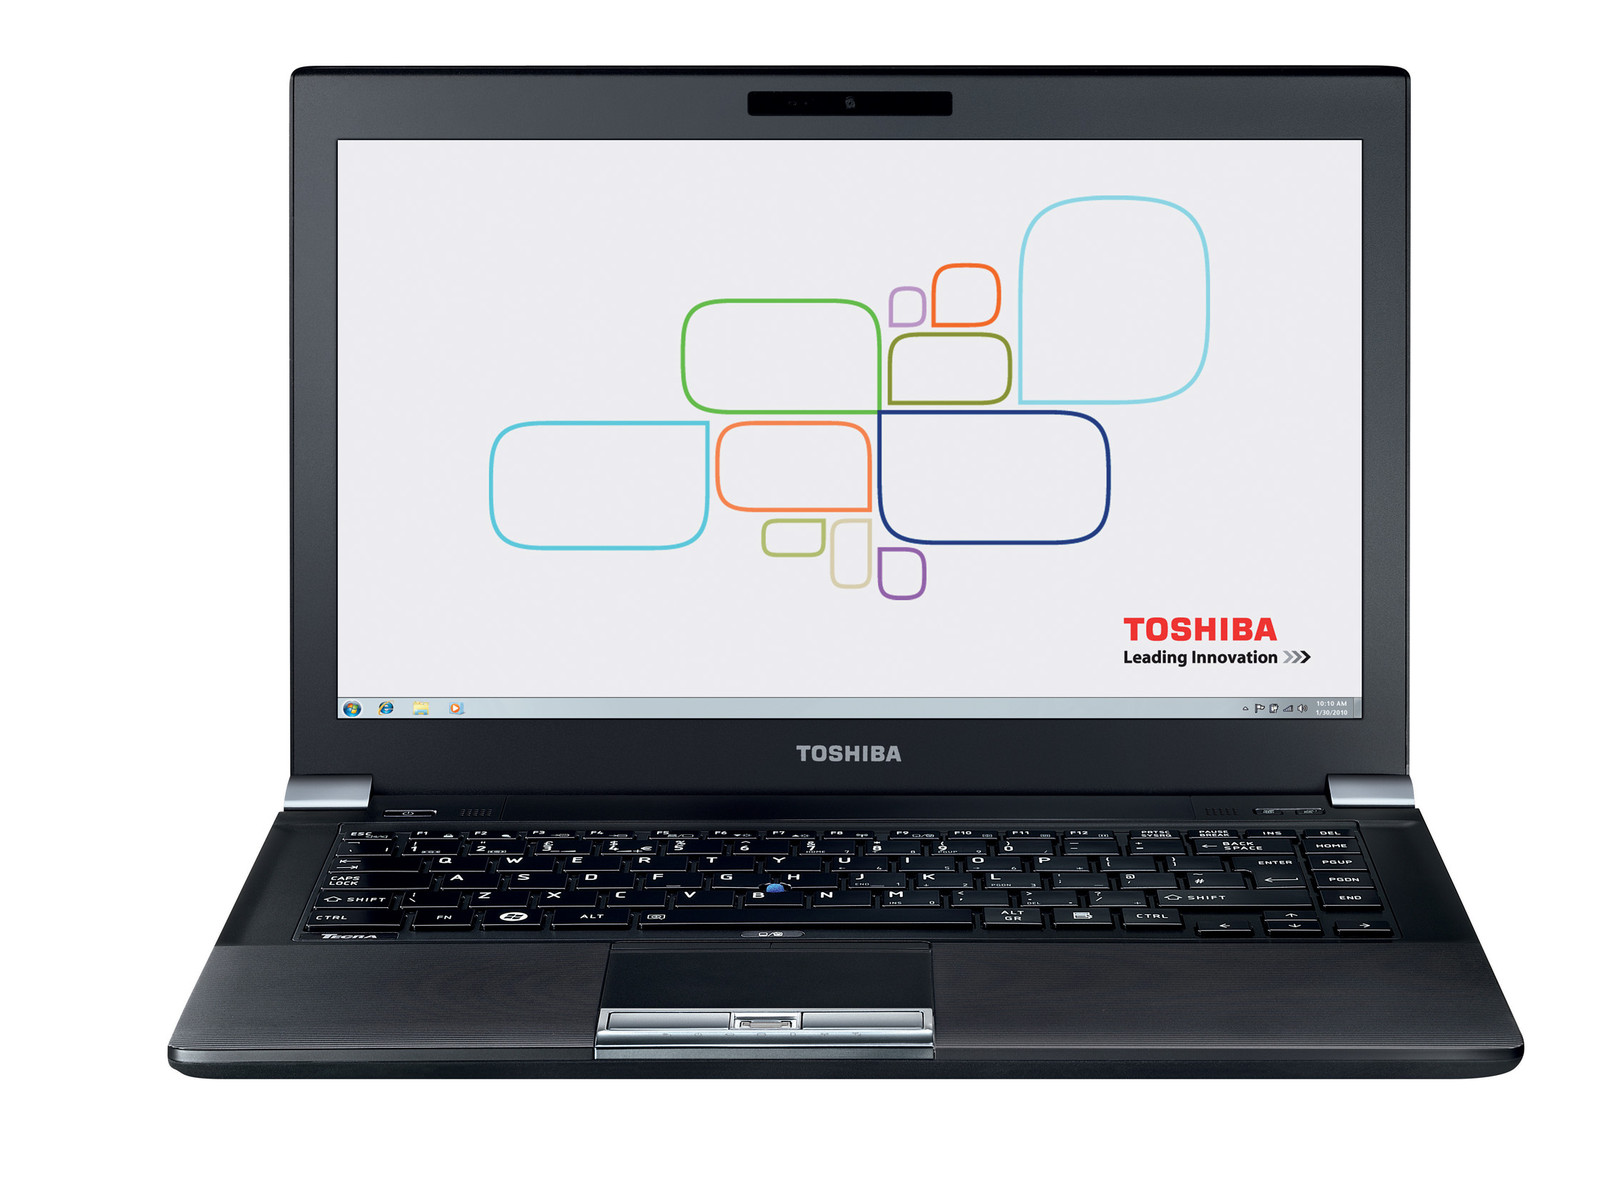 TOSHIBA PORTEGE Z940-B SRS AUDIO WINDOWS 10 DRIVER